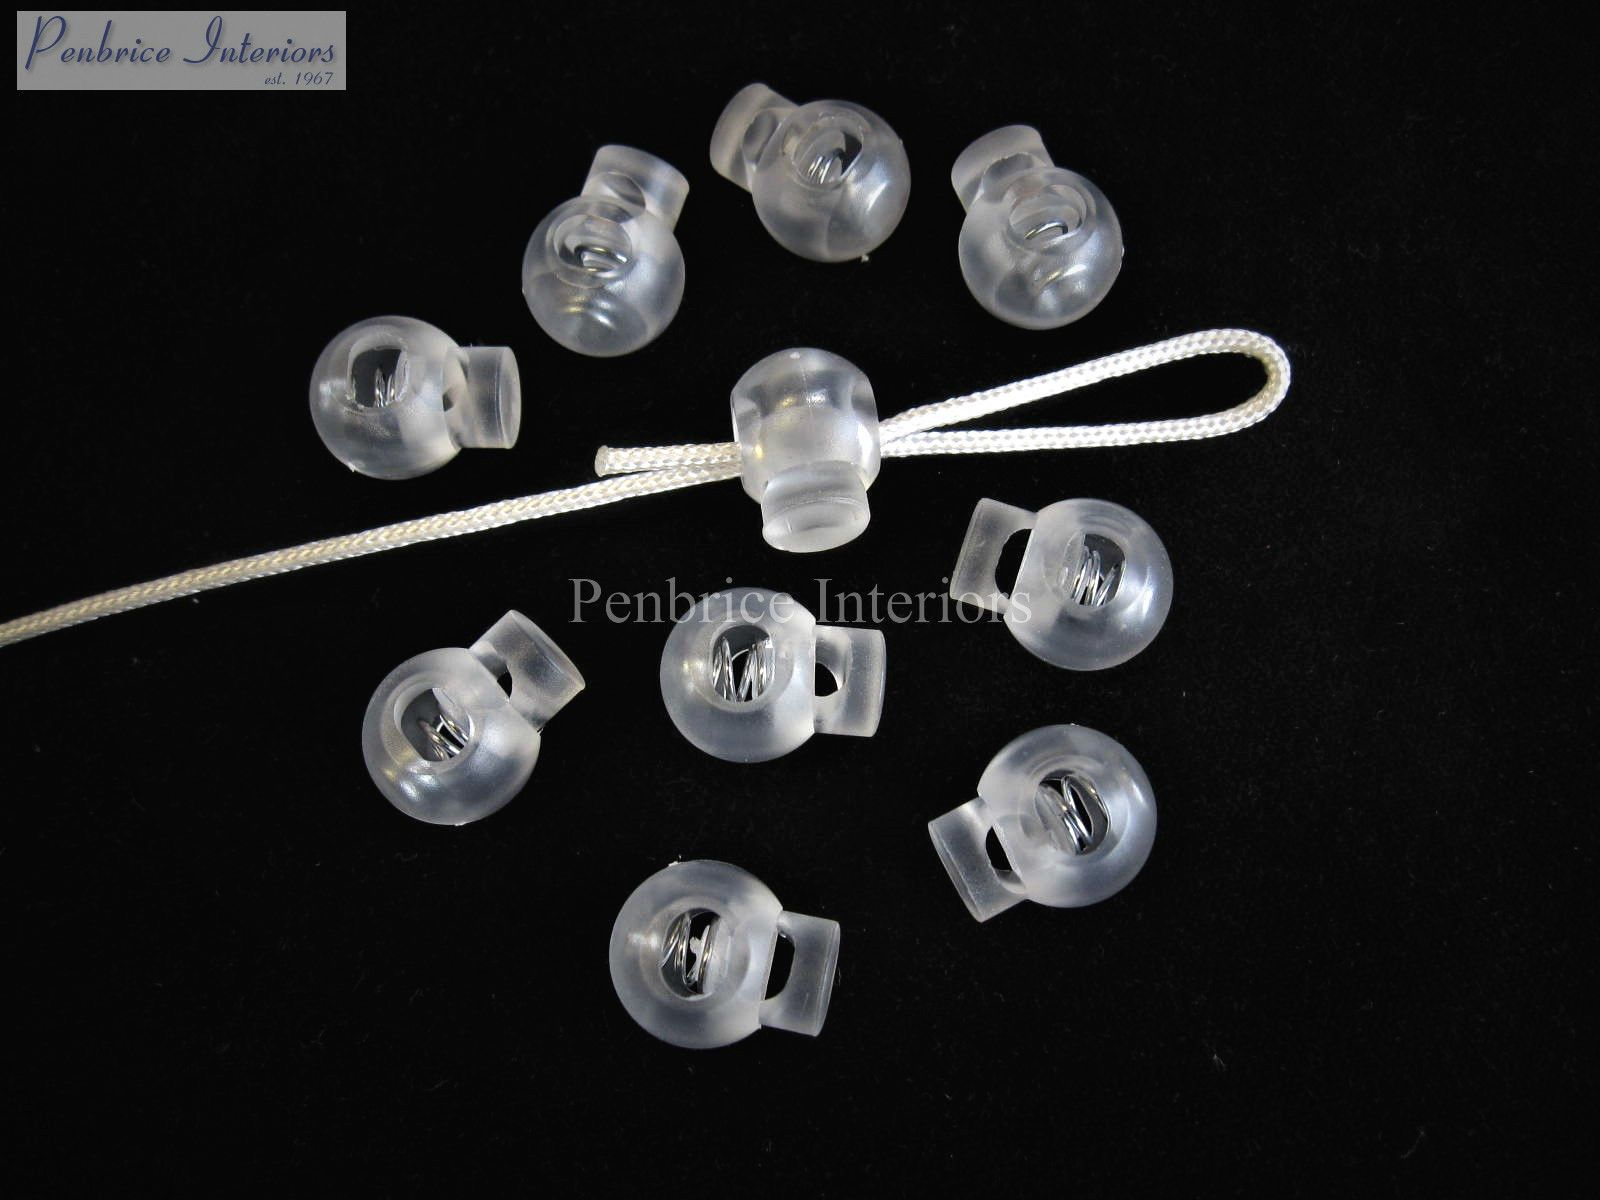 100 Orbs Roman Blind Spring Loaded Cord Toggles String